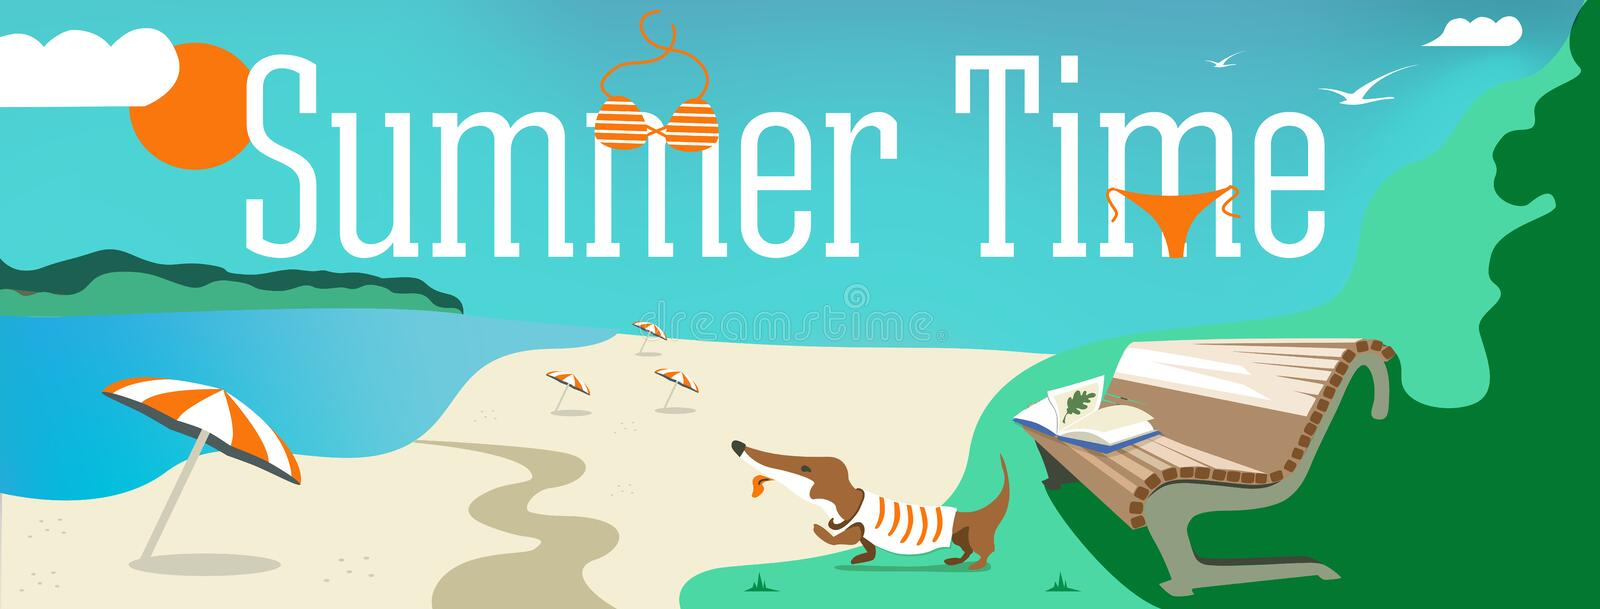 Vector design banner with text It`s Summer time. Illustration of shells, swimsuit, parasol, dog, sand, clouds, the beach elements vector illustration